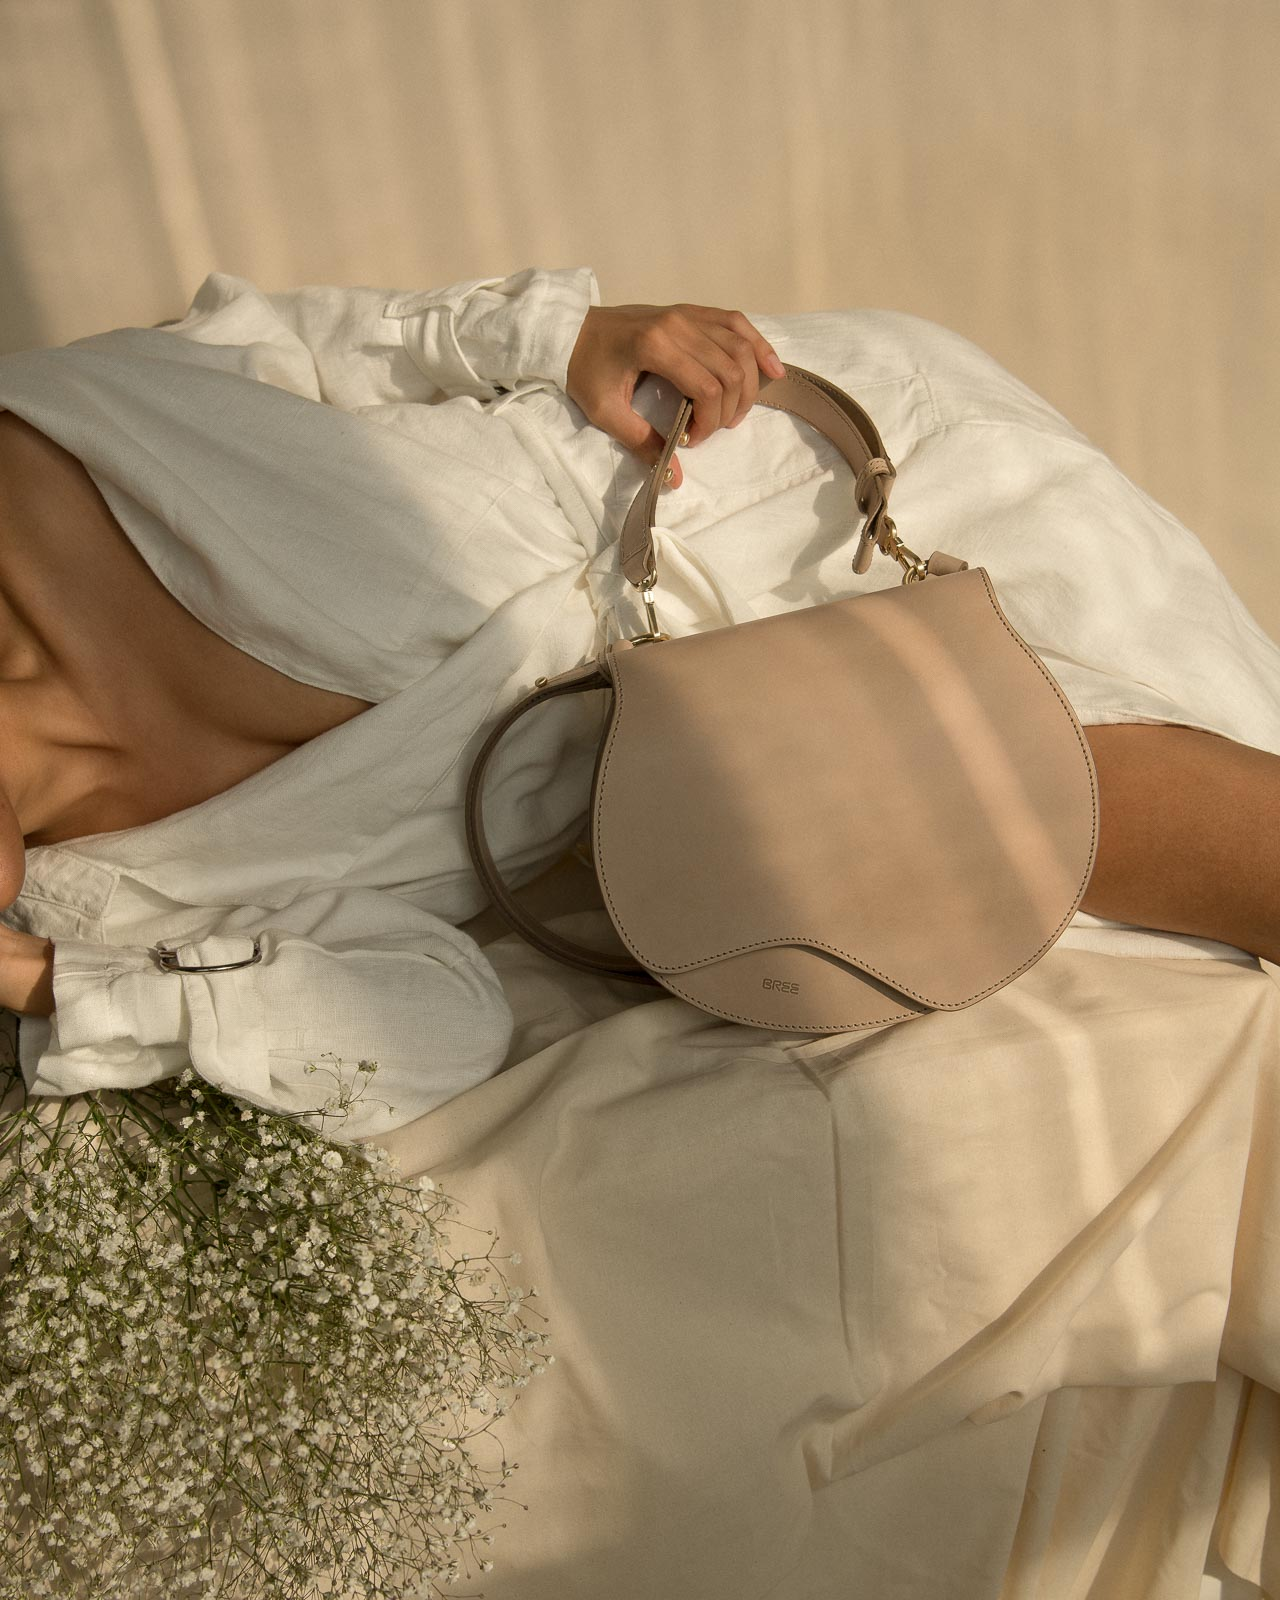 storm wears bree nature bag in the color hummus with a white blanche copenhagen linen coat at Studio230 shot by Marius Knieling